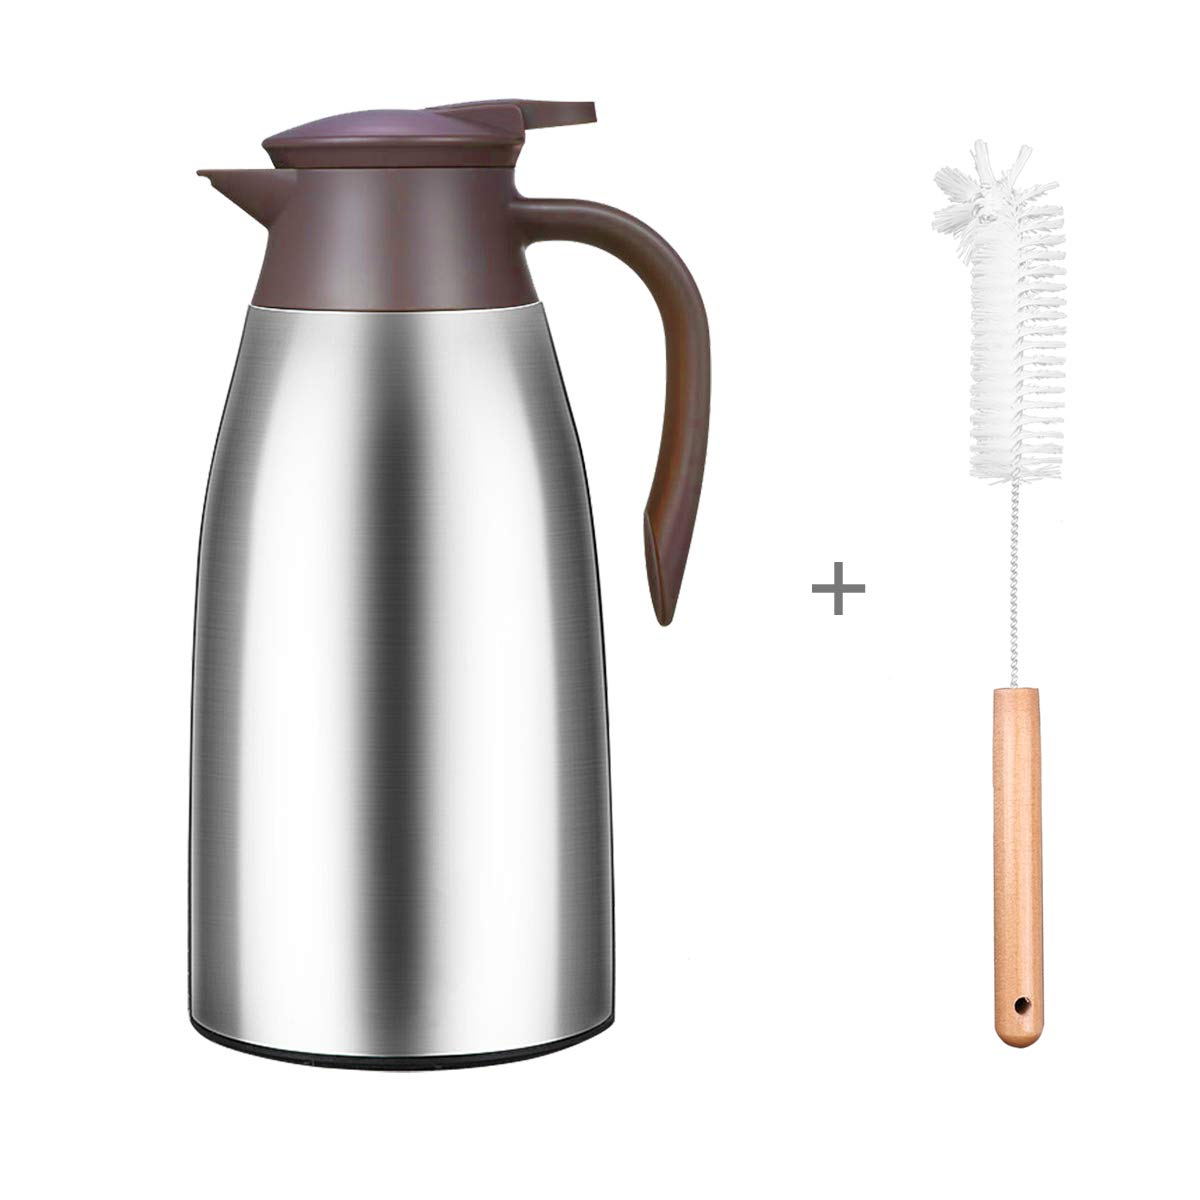 68 Oz Stainless Steel Thermal Coffee Carafe with Free Brush, Double Walled Vacuum Thermos Pot for Coffee, Tea and Hot Water, 2 Litre